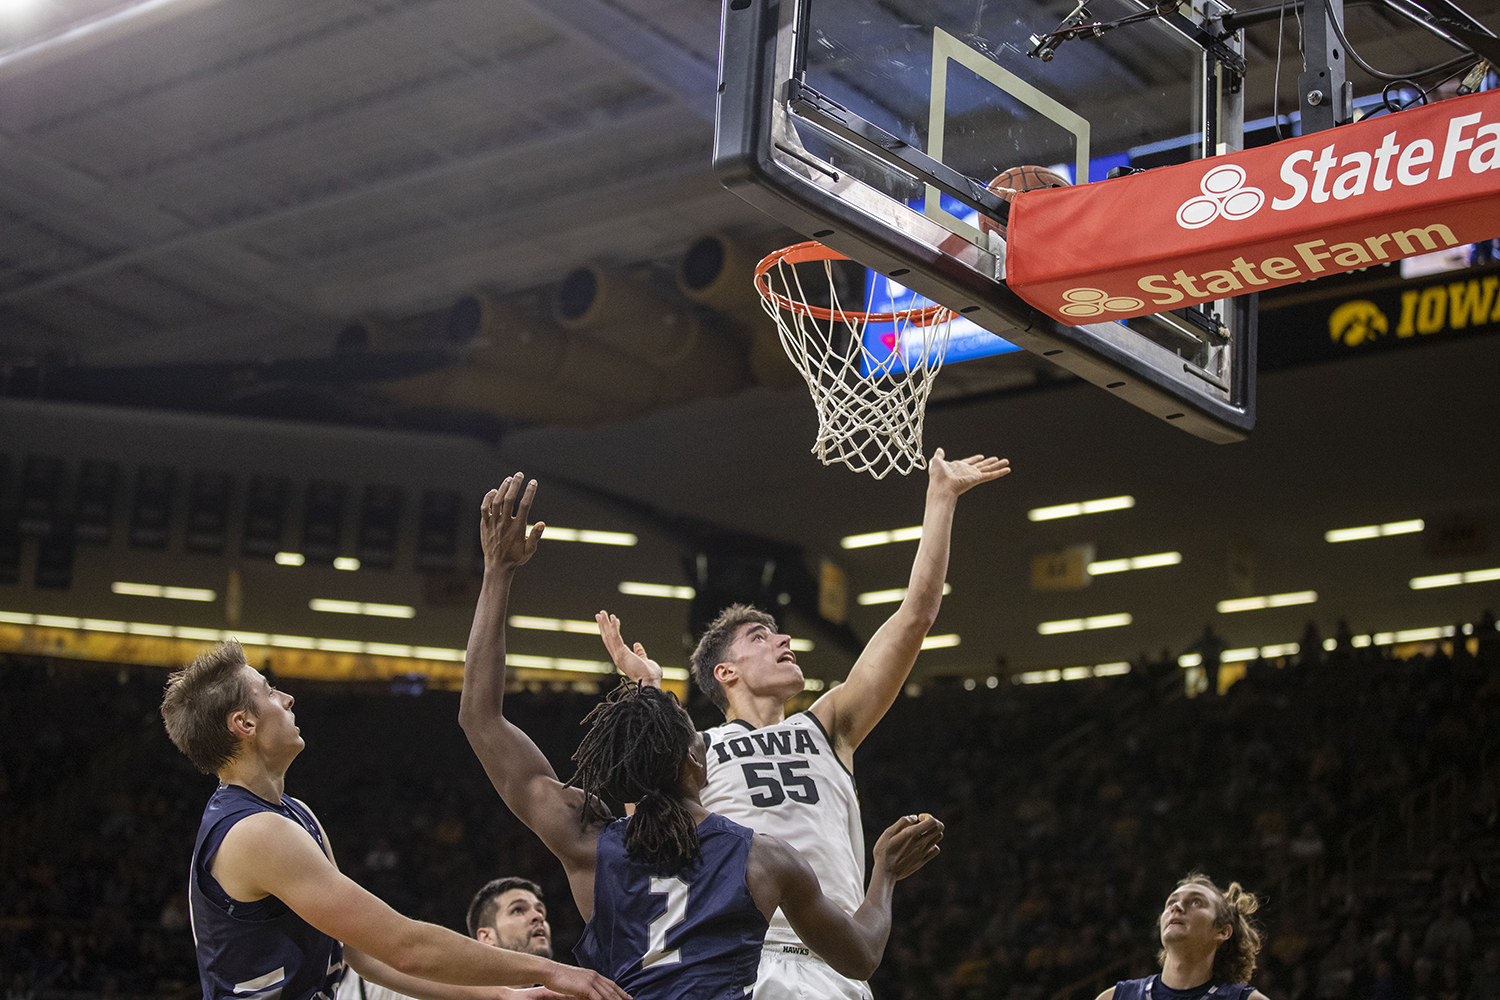 Iowa center Luka Garza goes for a lay-up during the Iowa's  game against The University of North Florida in Carver-Hawkeye Arena on Thursday, Nov. 21, 2019. The Hawkeyes defeated the Osprey 83-68.